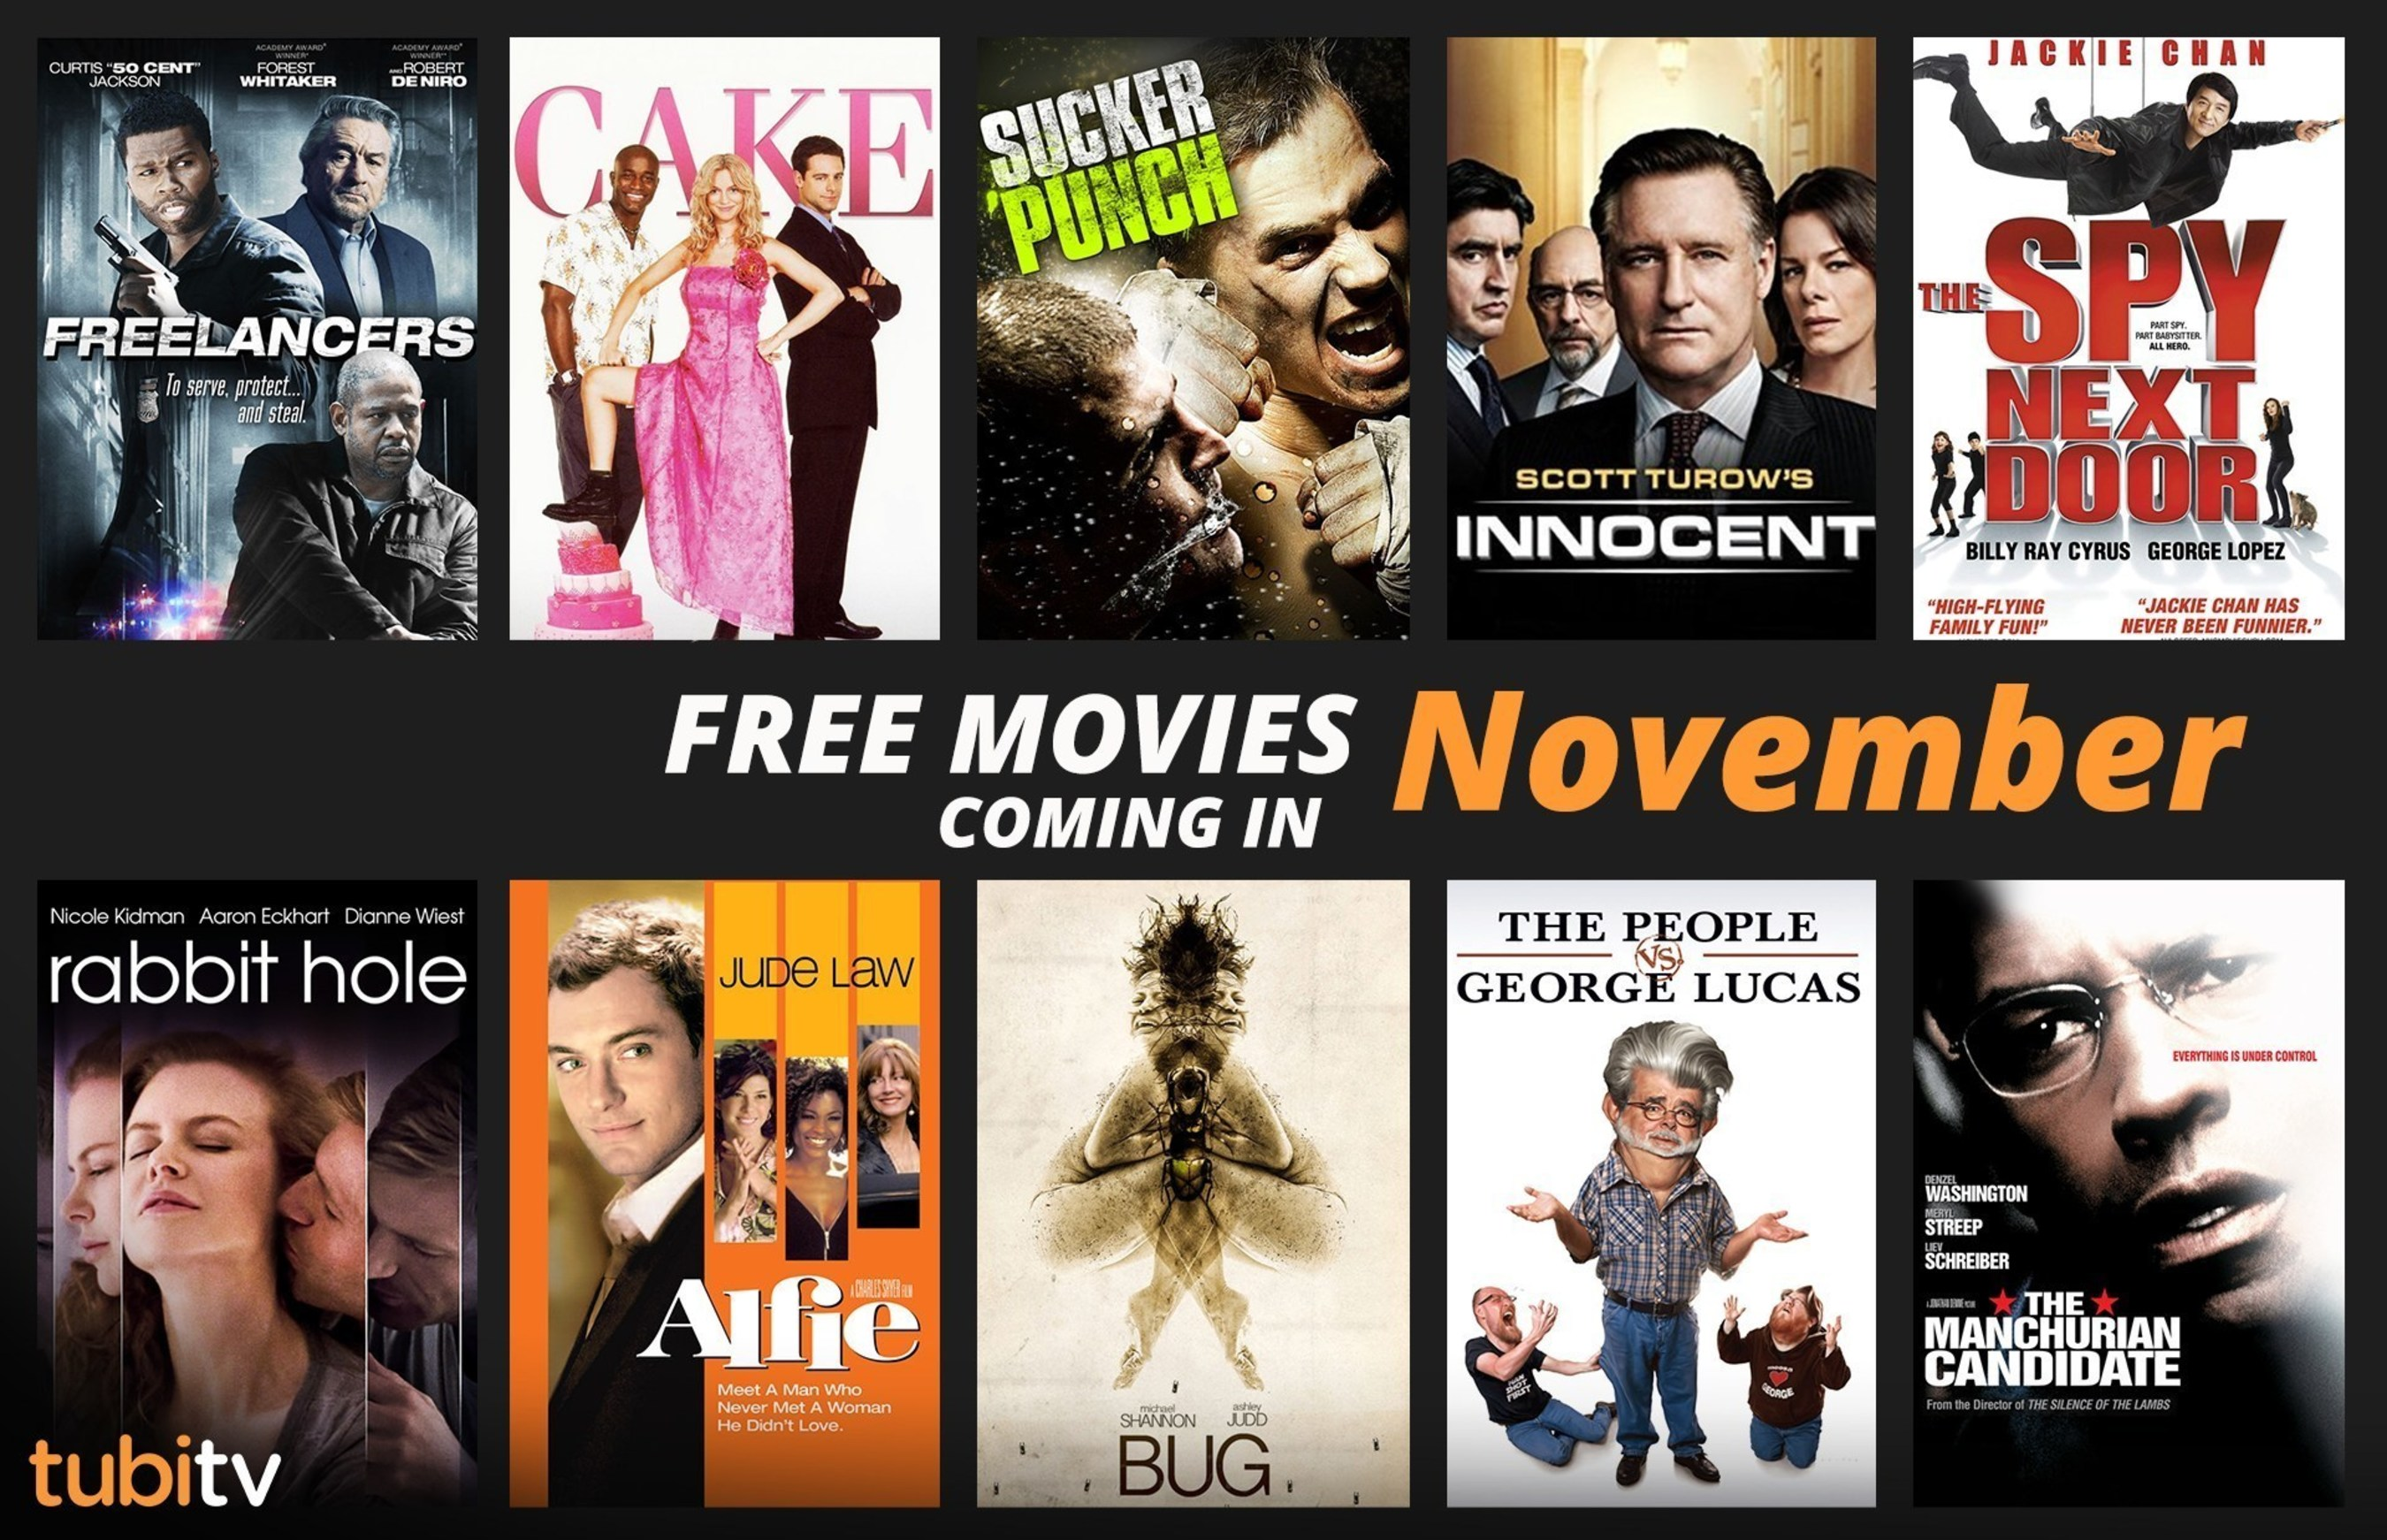 Tubi TV Releases New Lineup of Free Streaming Movie Offerings for November 2016